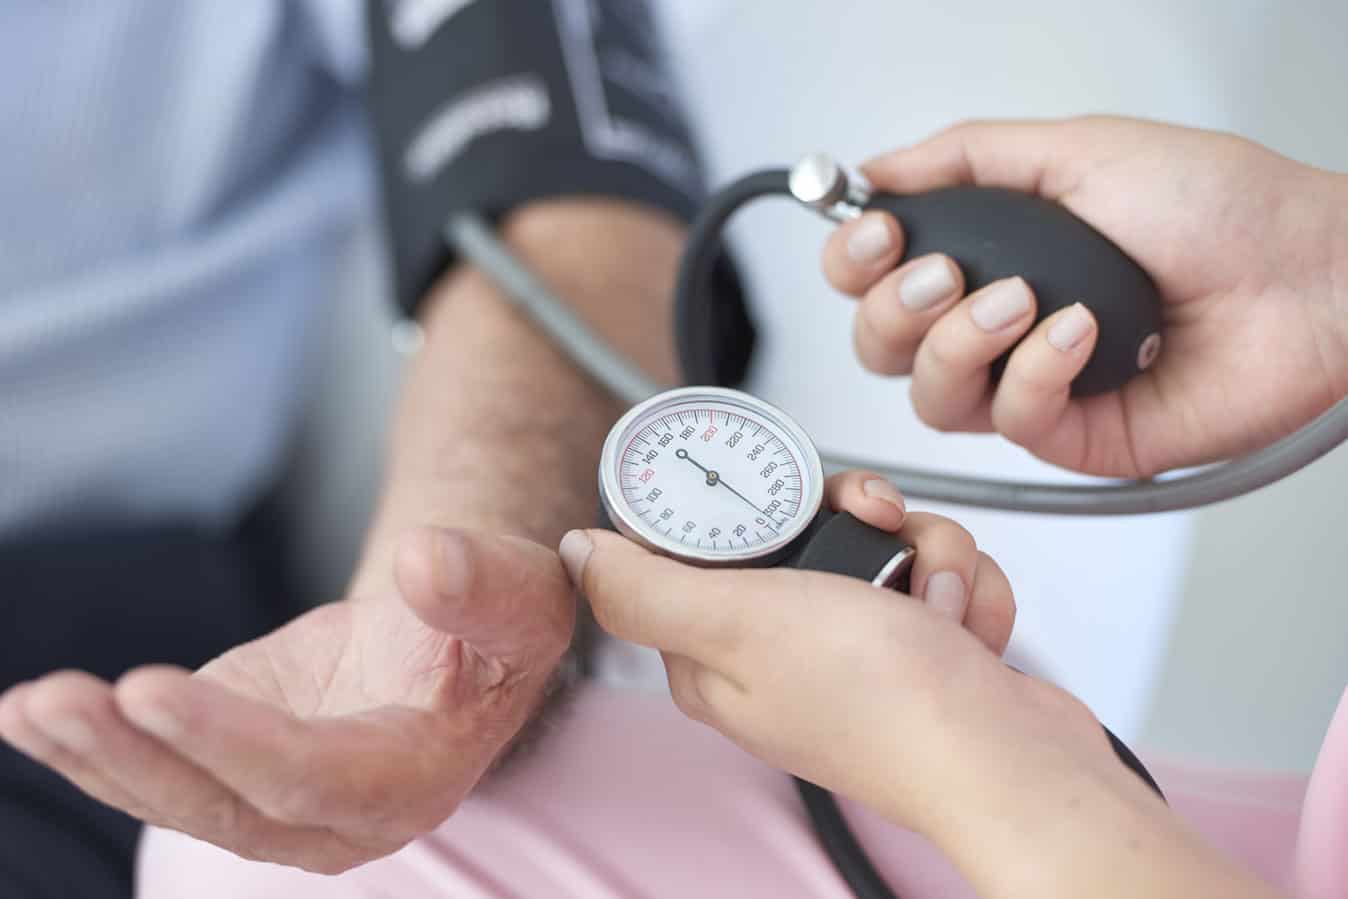 Improving-blood-pressure-control-in-primary-care_the-impress-study